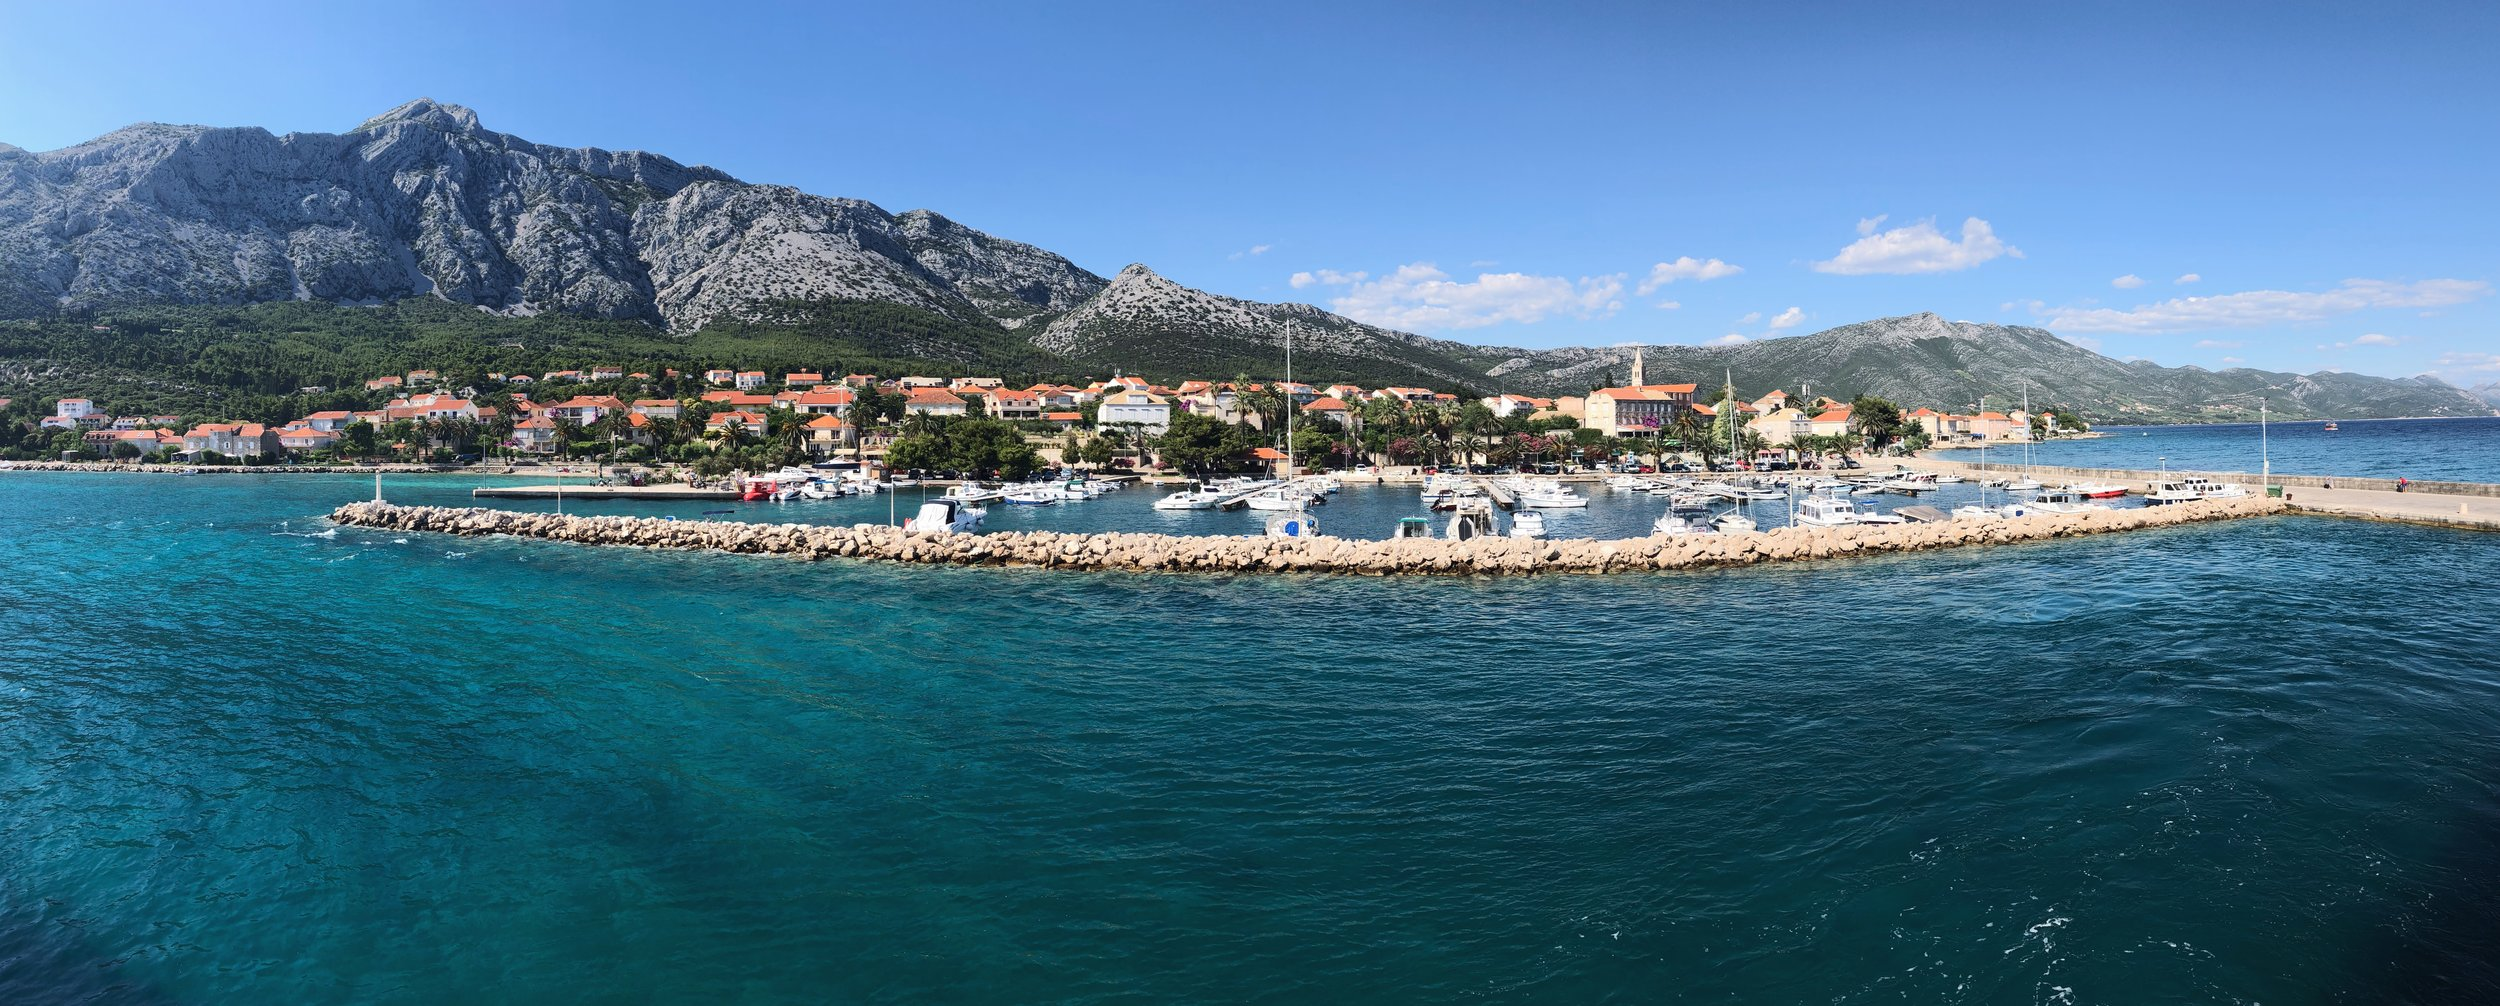 View of Orebic from the departing ferry.